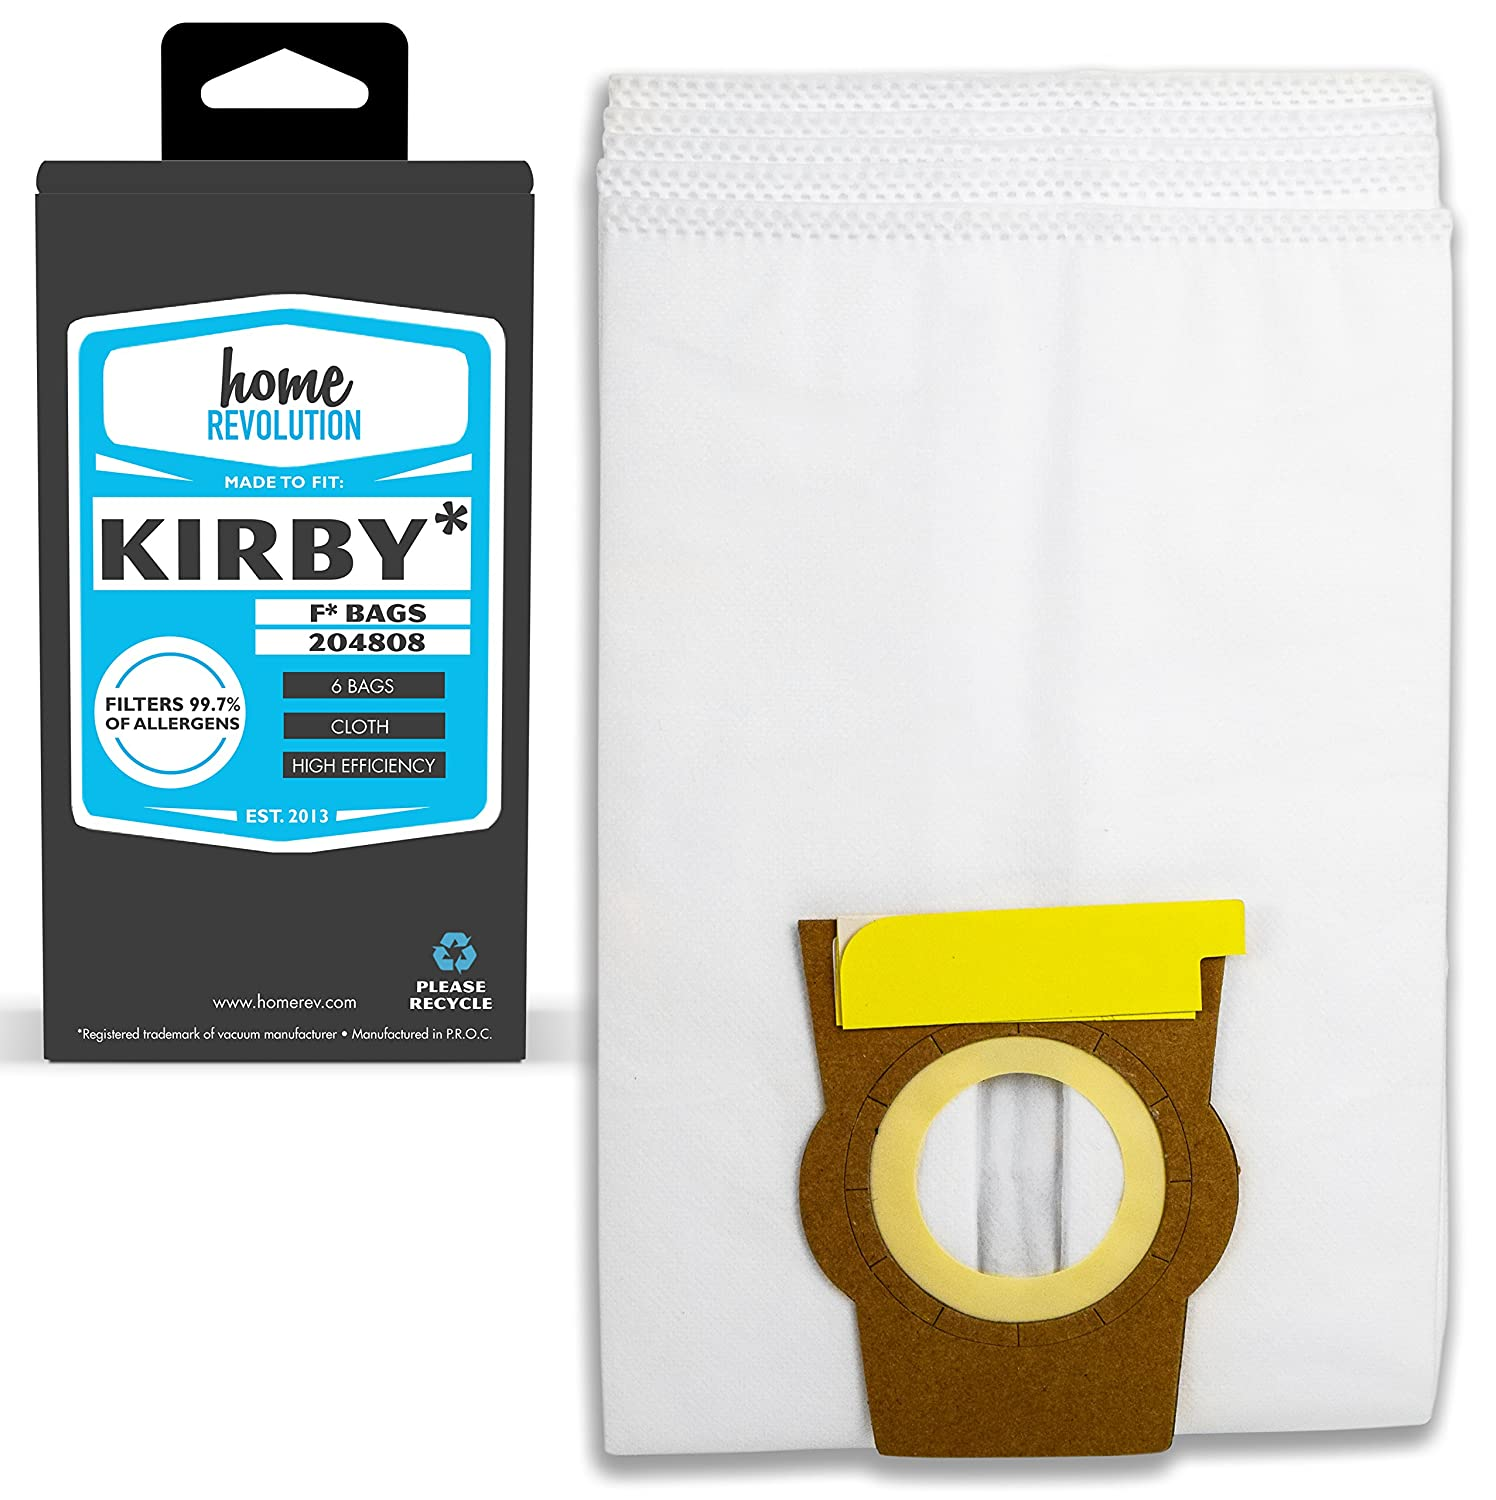 Home Revolution Replacement Vacuum Bags, Fits KIRBY and Parts 204808,  204808GW, & 205808